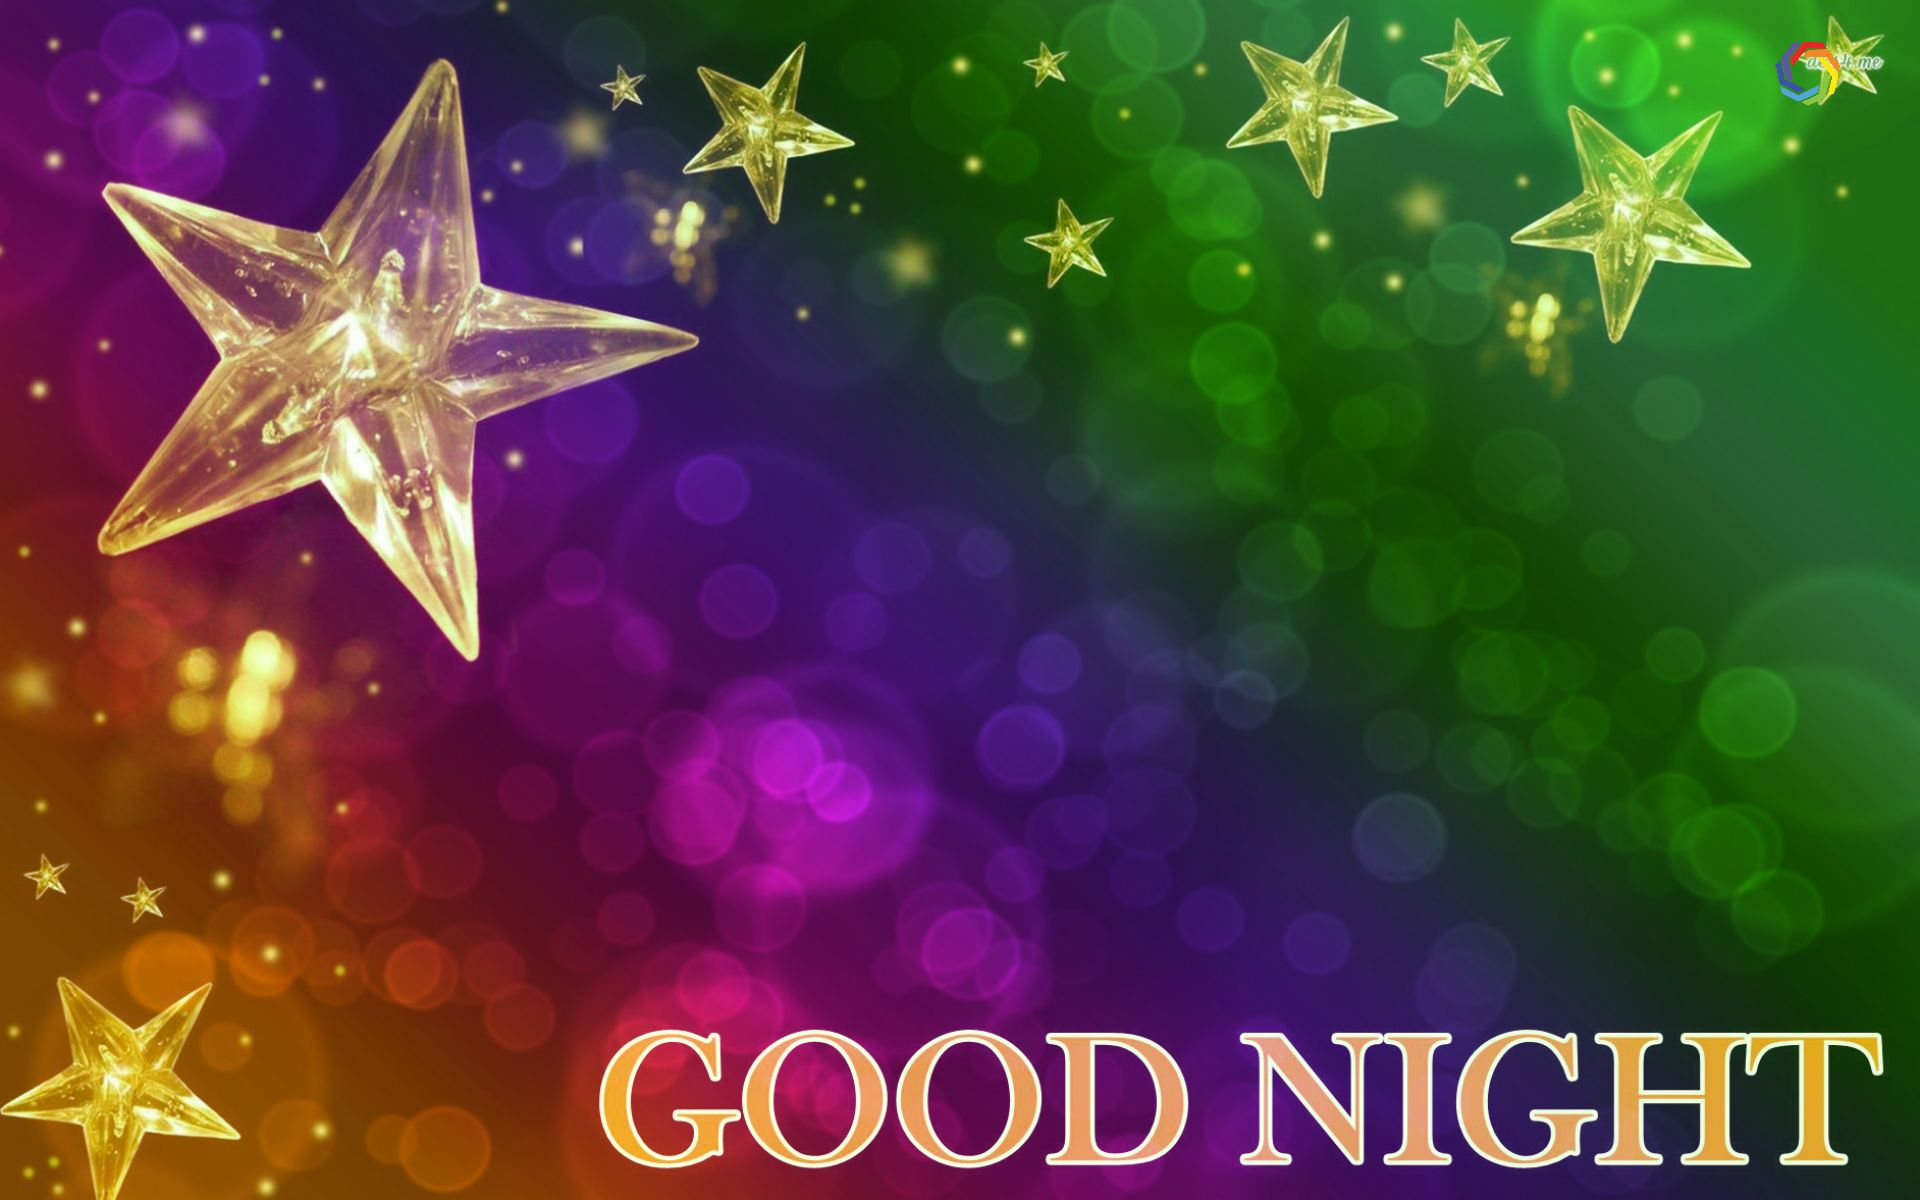 Download Free Hd Good Night Download Background Hd Widescreen Wallpaper Or High Definition Wid Background Hd Wallpaper Good Night Wallpaper Download Background